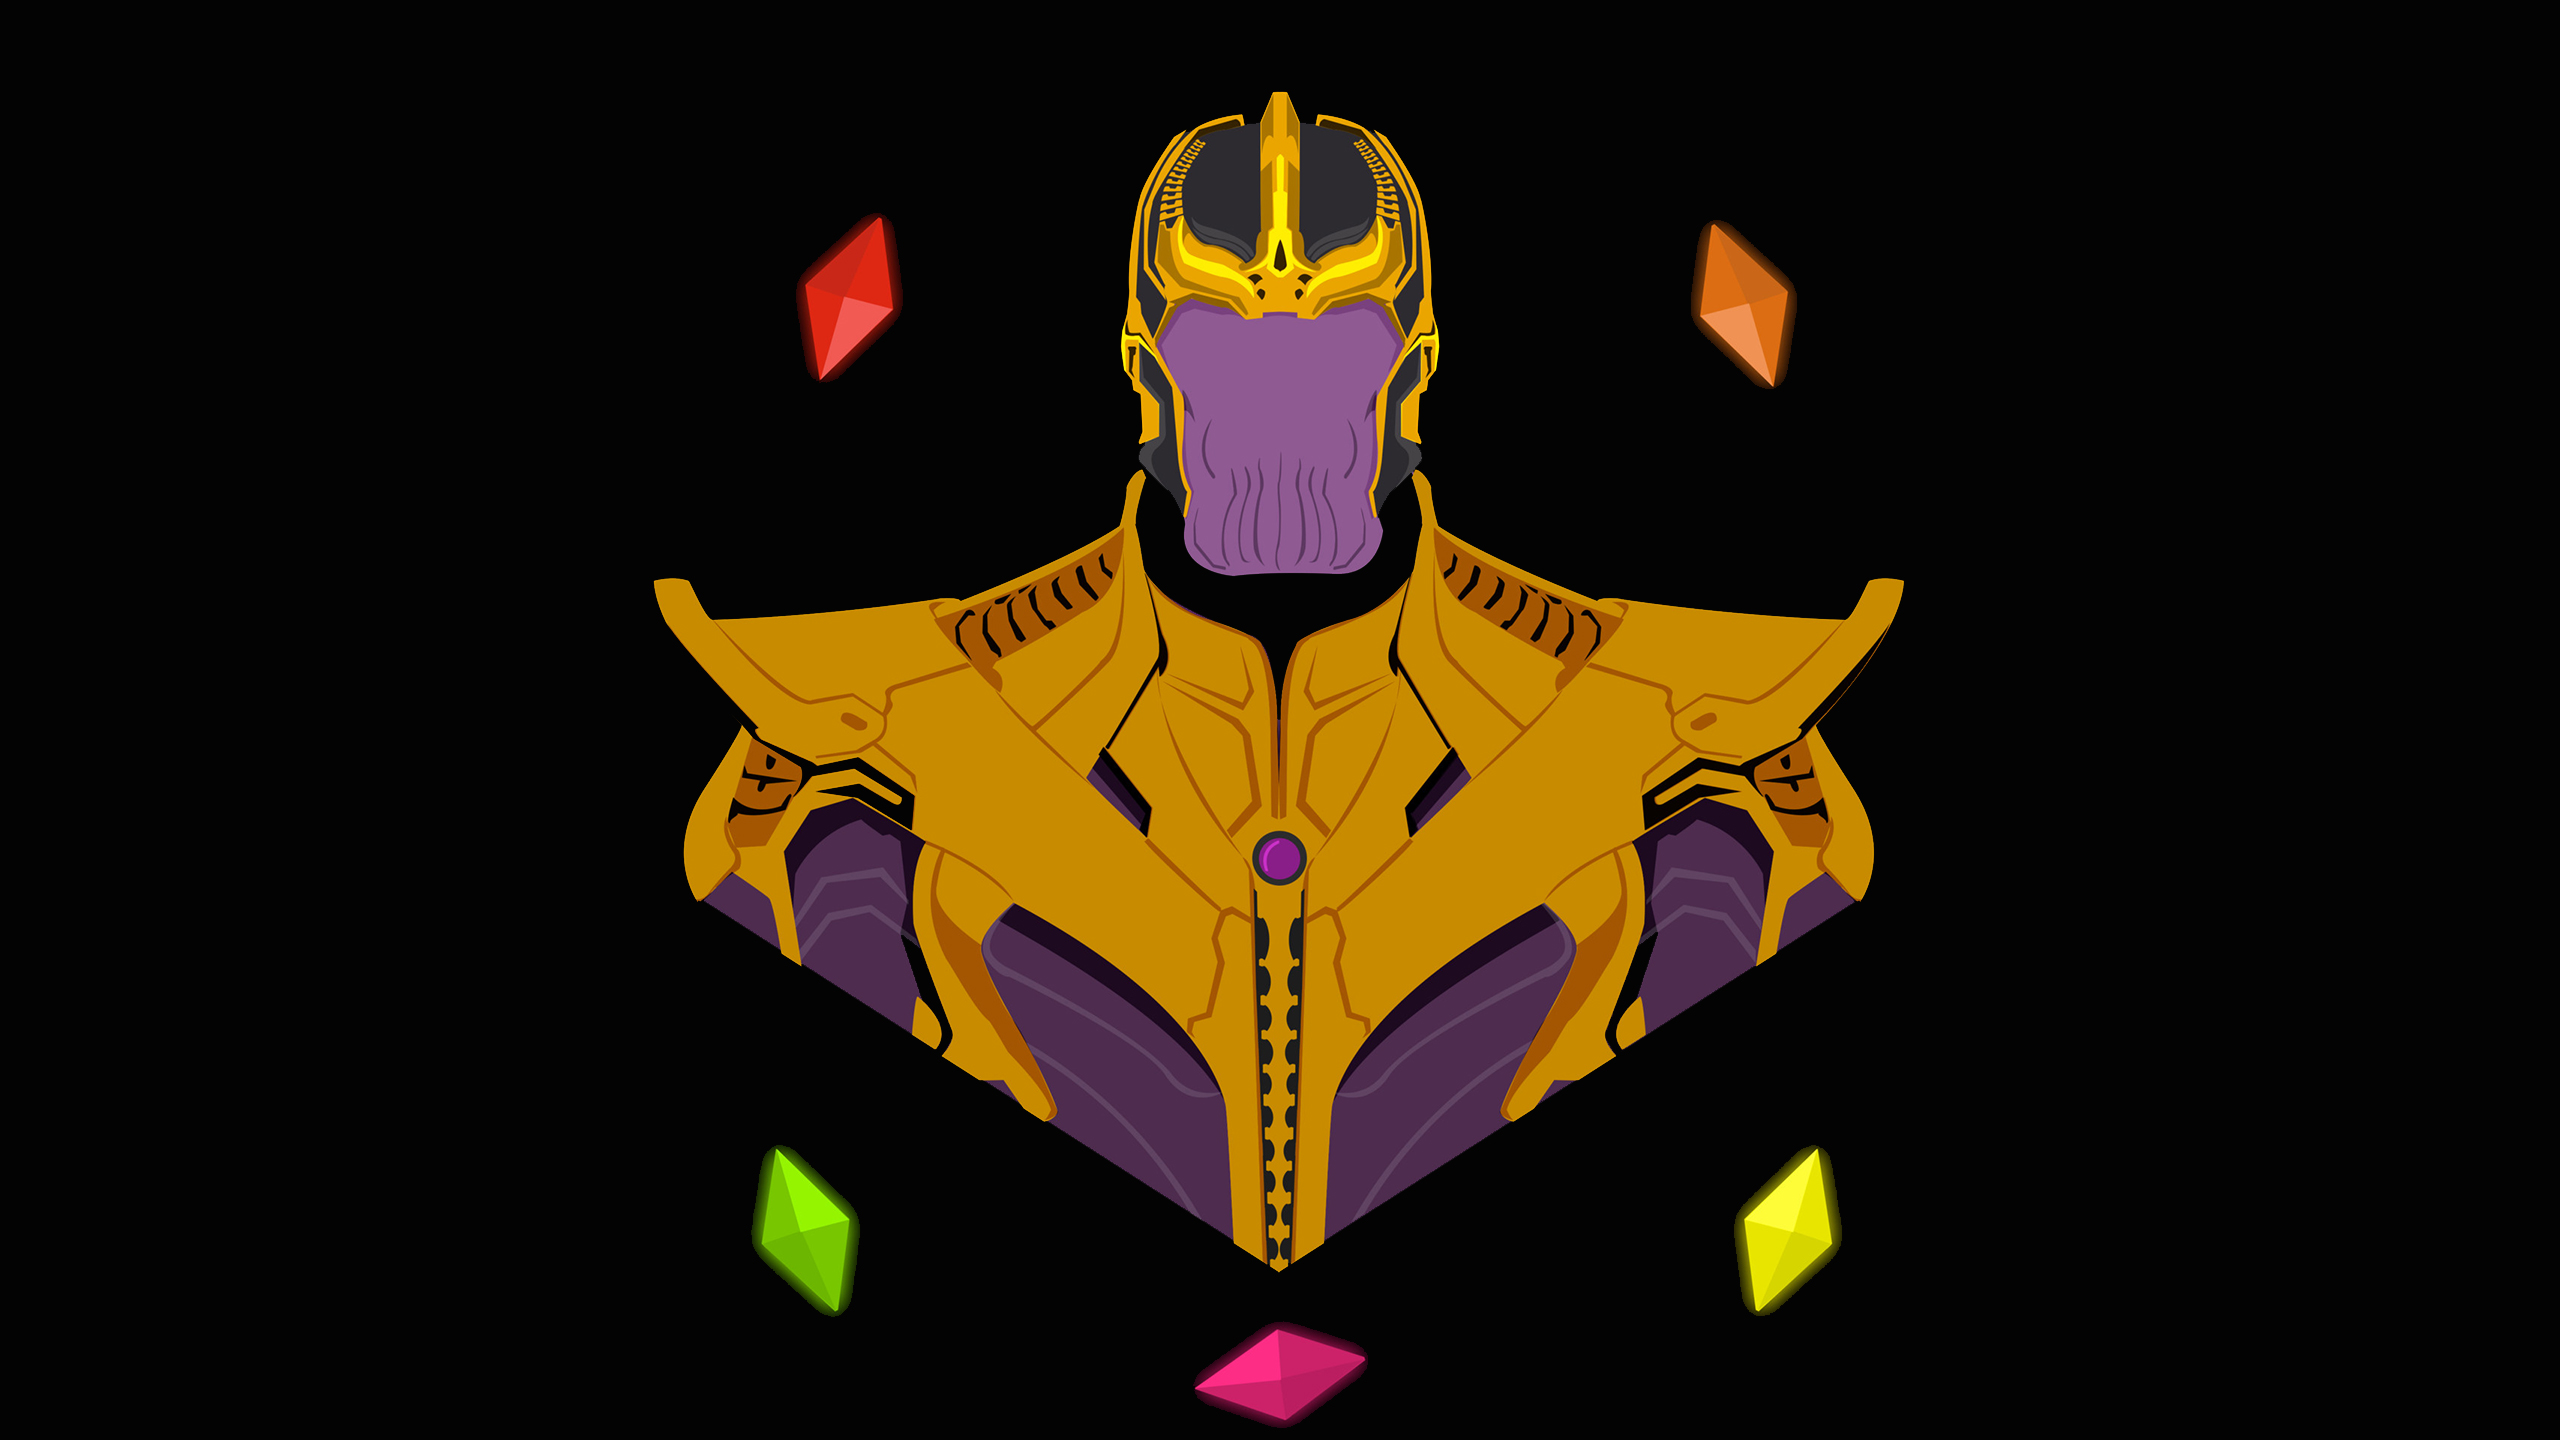 Thanos Infinity Stone Pop Art Hd Movies 4k Wallpapers Images